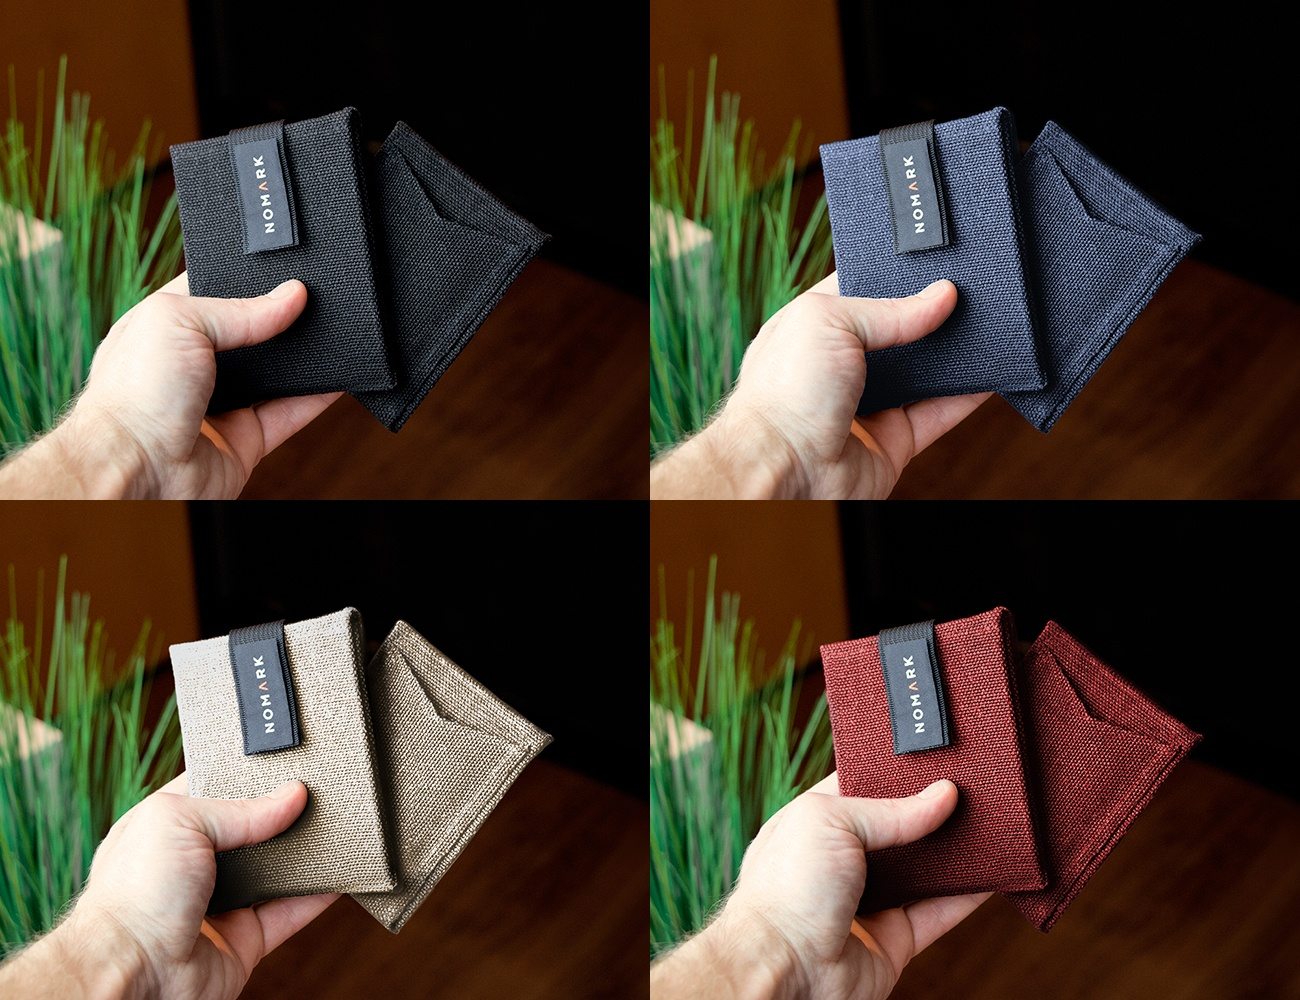 Mark I Signature Eco-Friendly Wallet